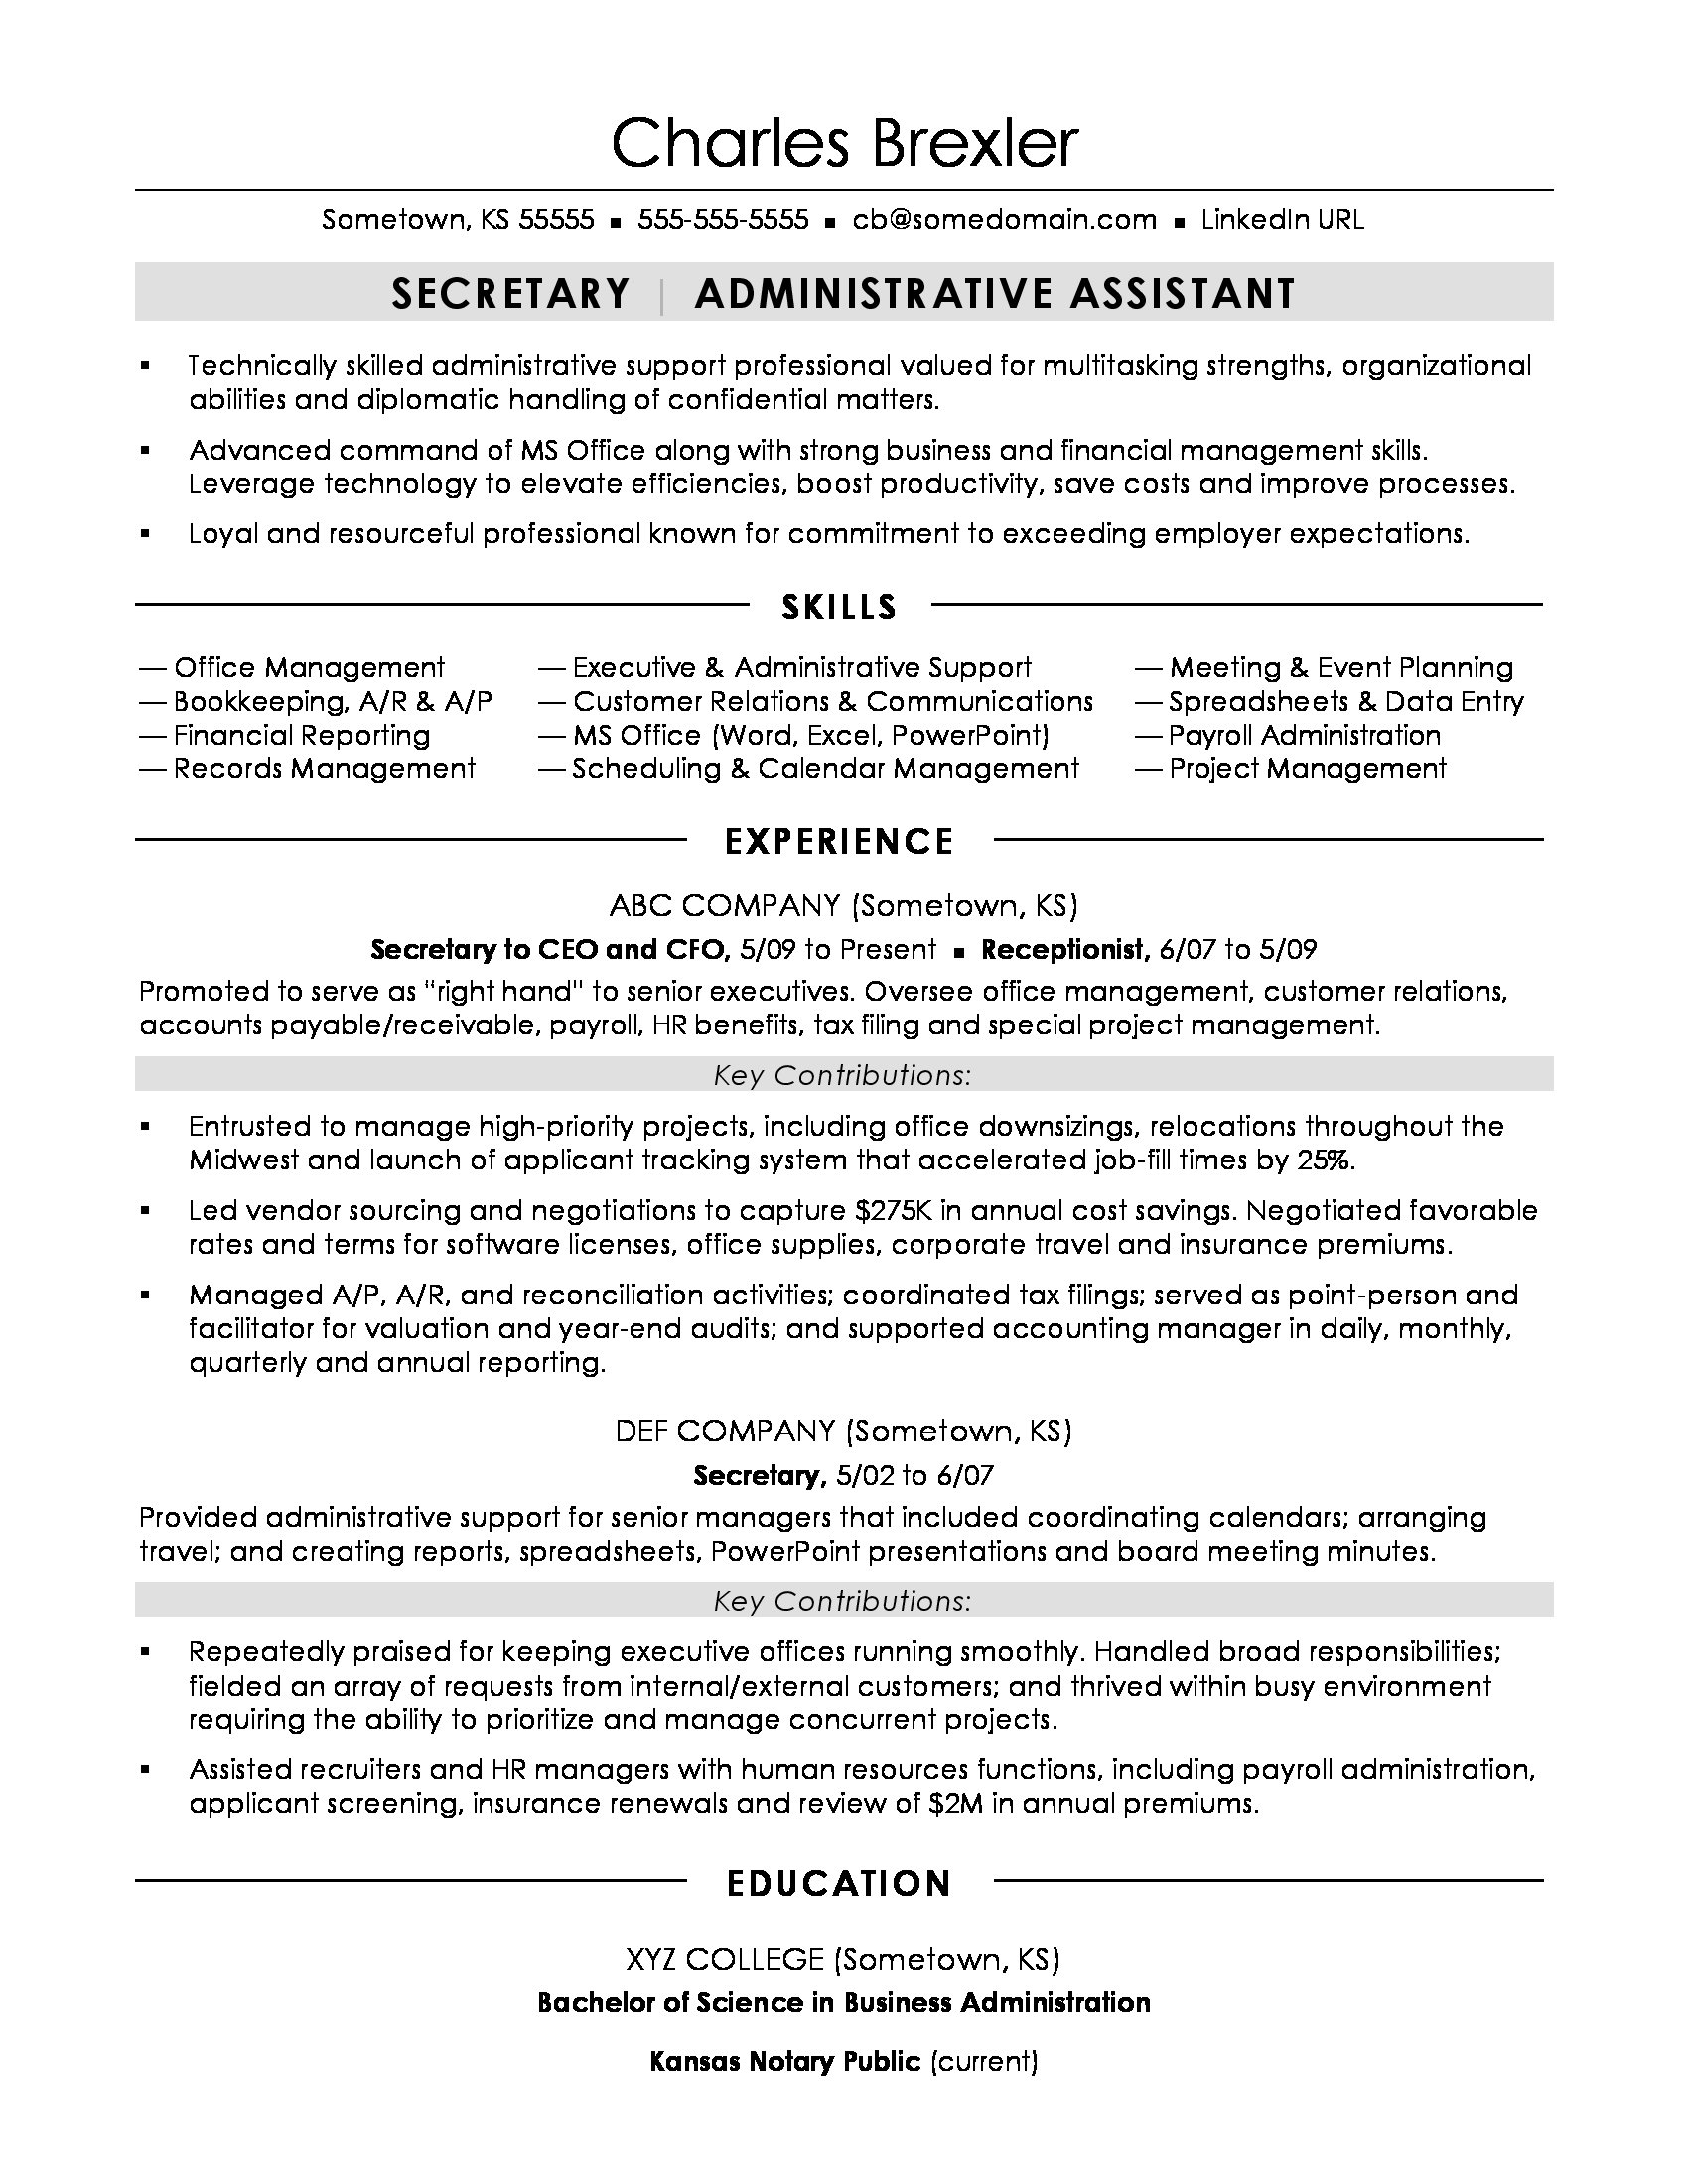 Secretary Resume Sample  Office Skills Resume